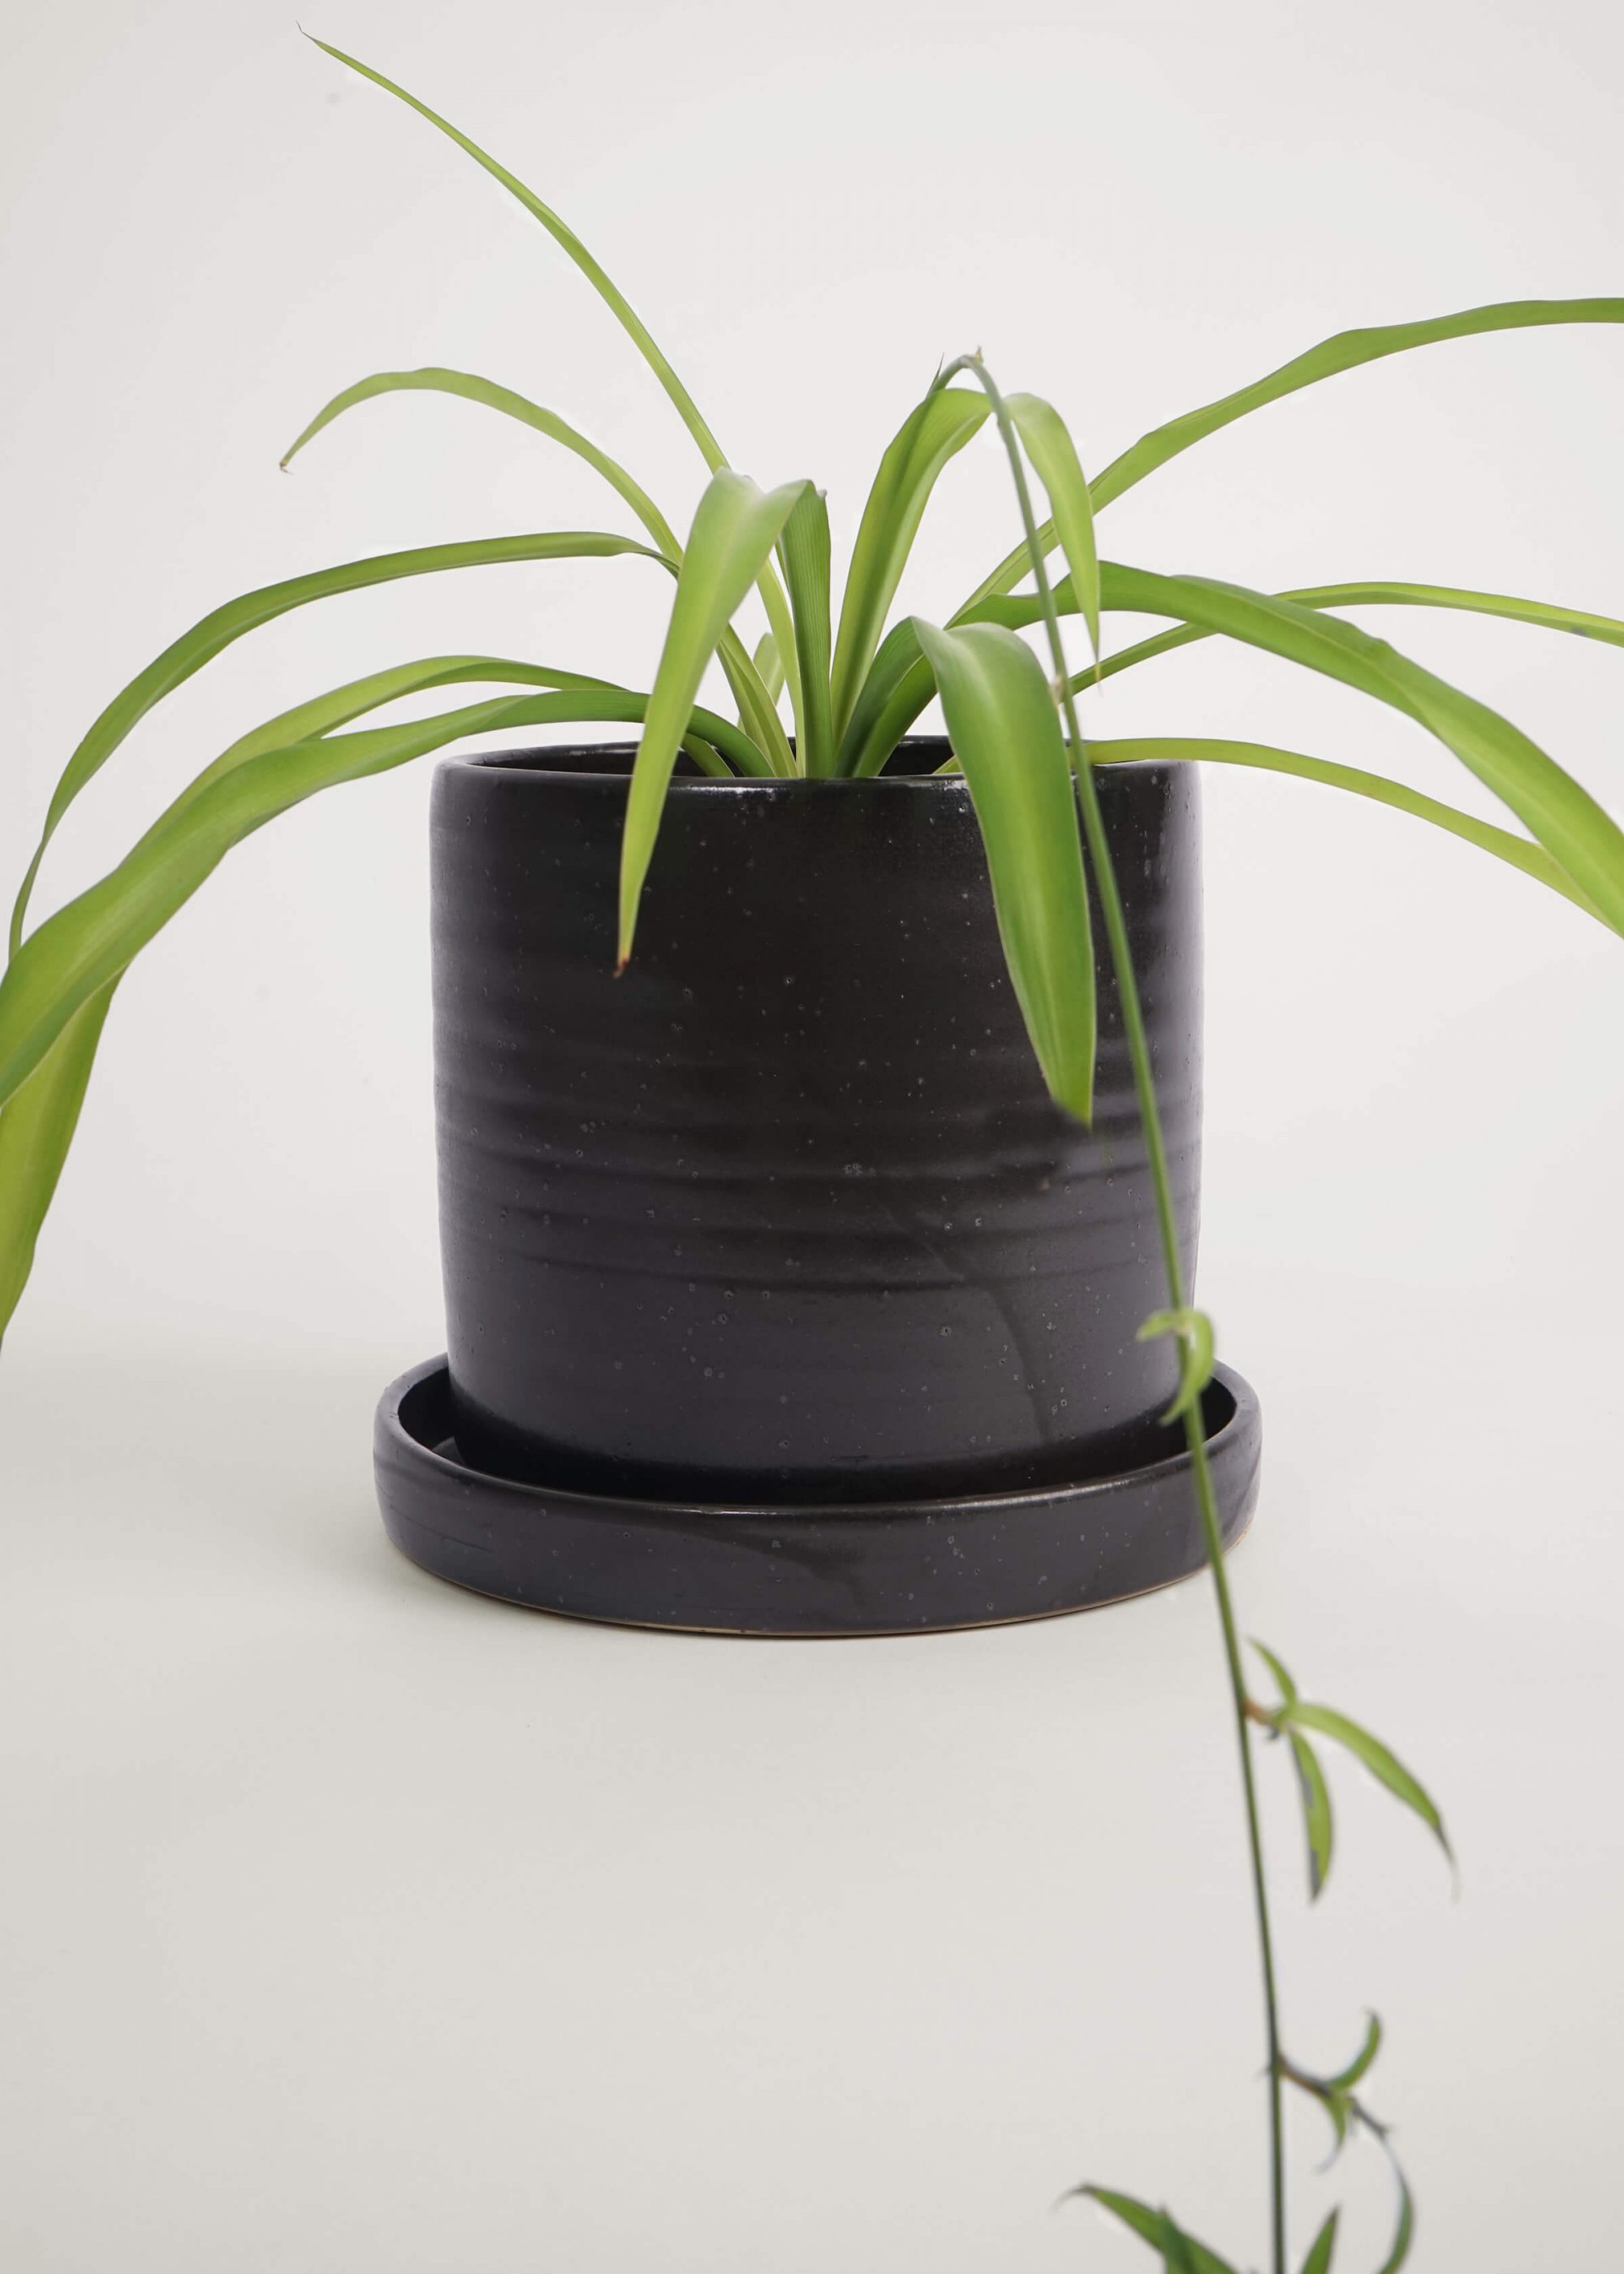 Product image for N° ICD10 Burri Planter L